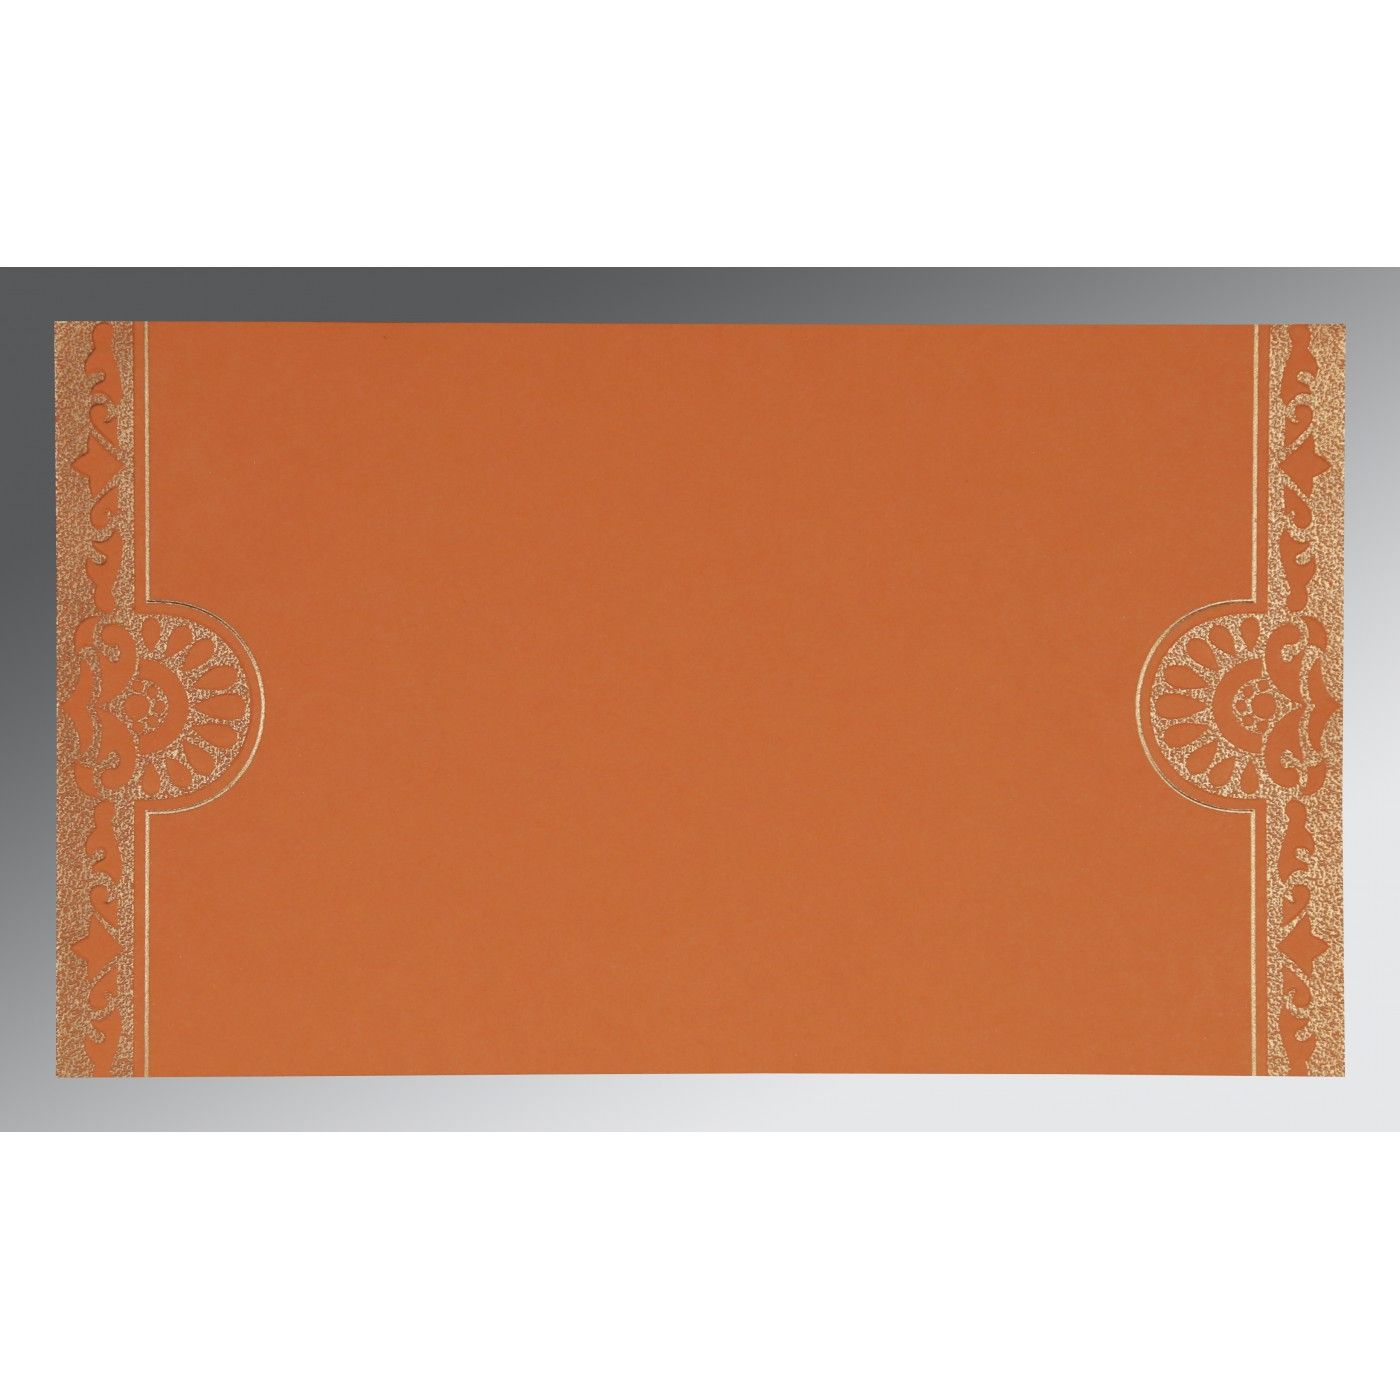 OFF-WHITE SHIMMERY FLORAL THEMED - SCREEN PRINTED WEDDING CARD : CSO-8227D - IndianWeddingCards